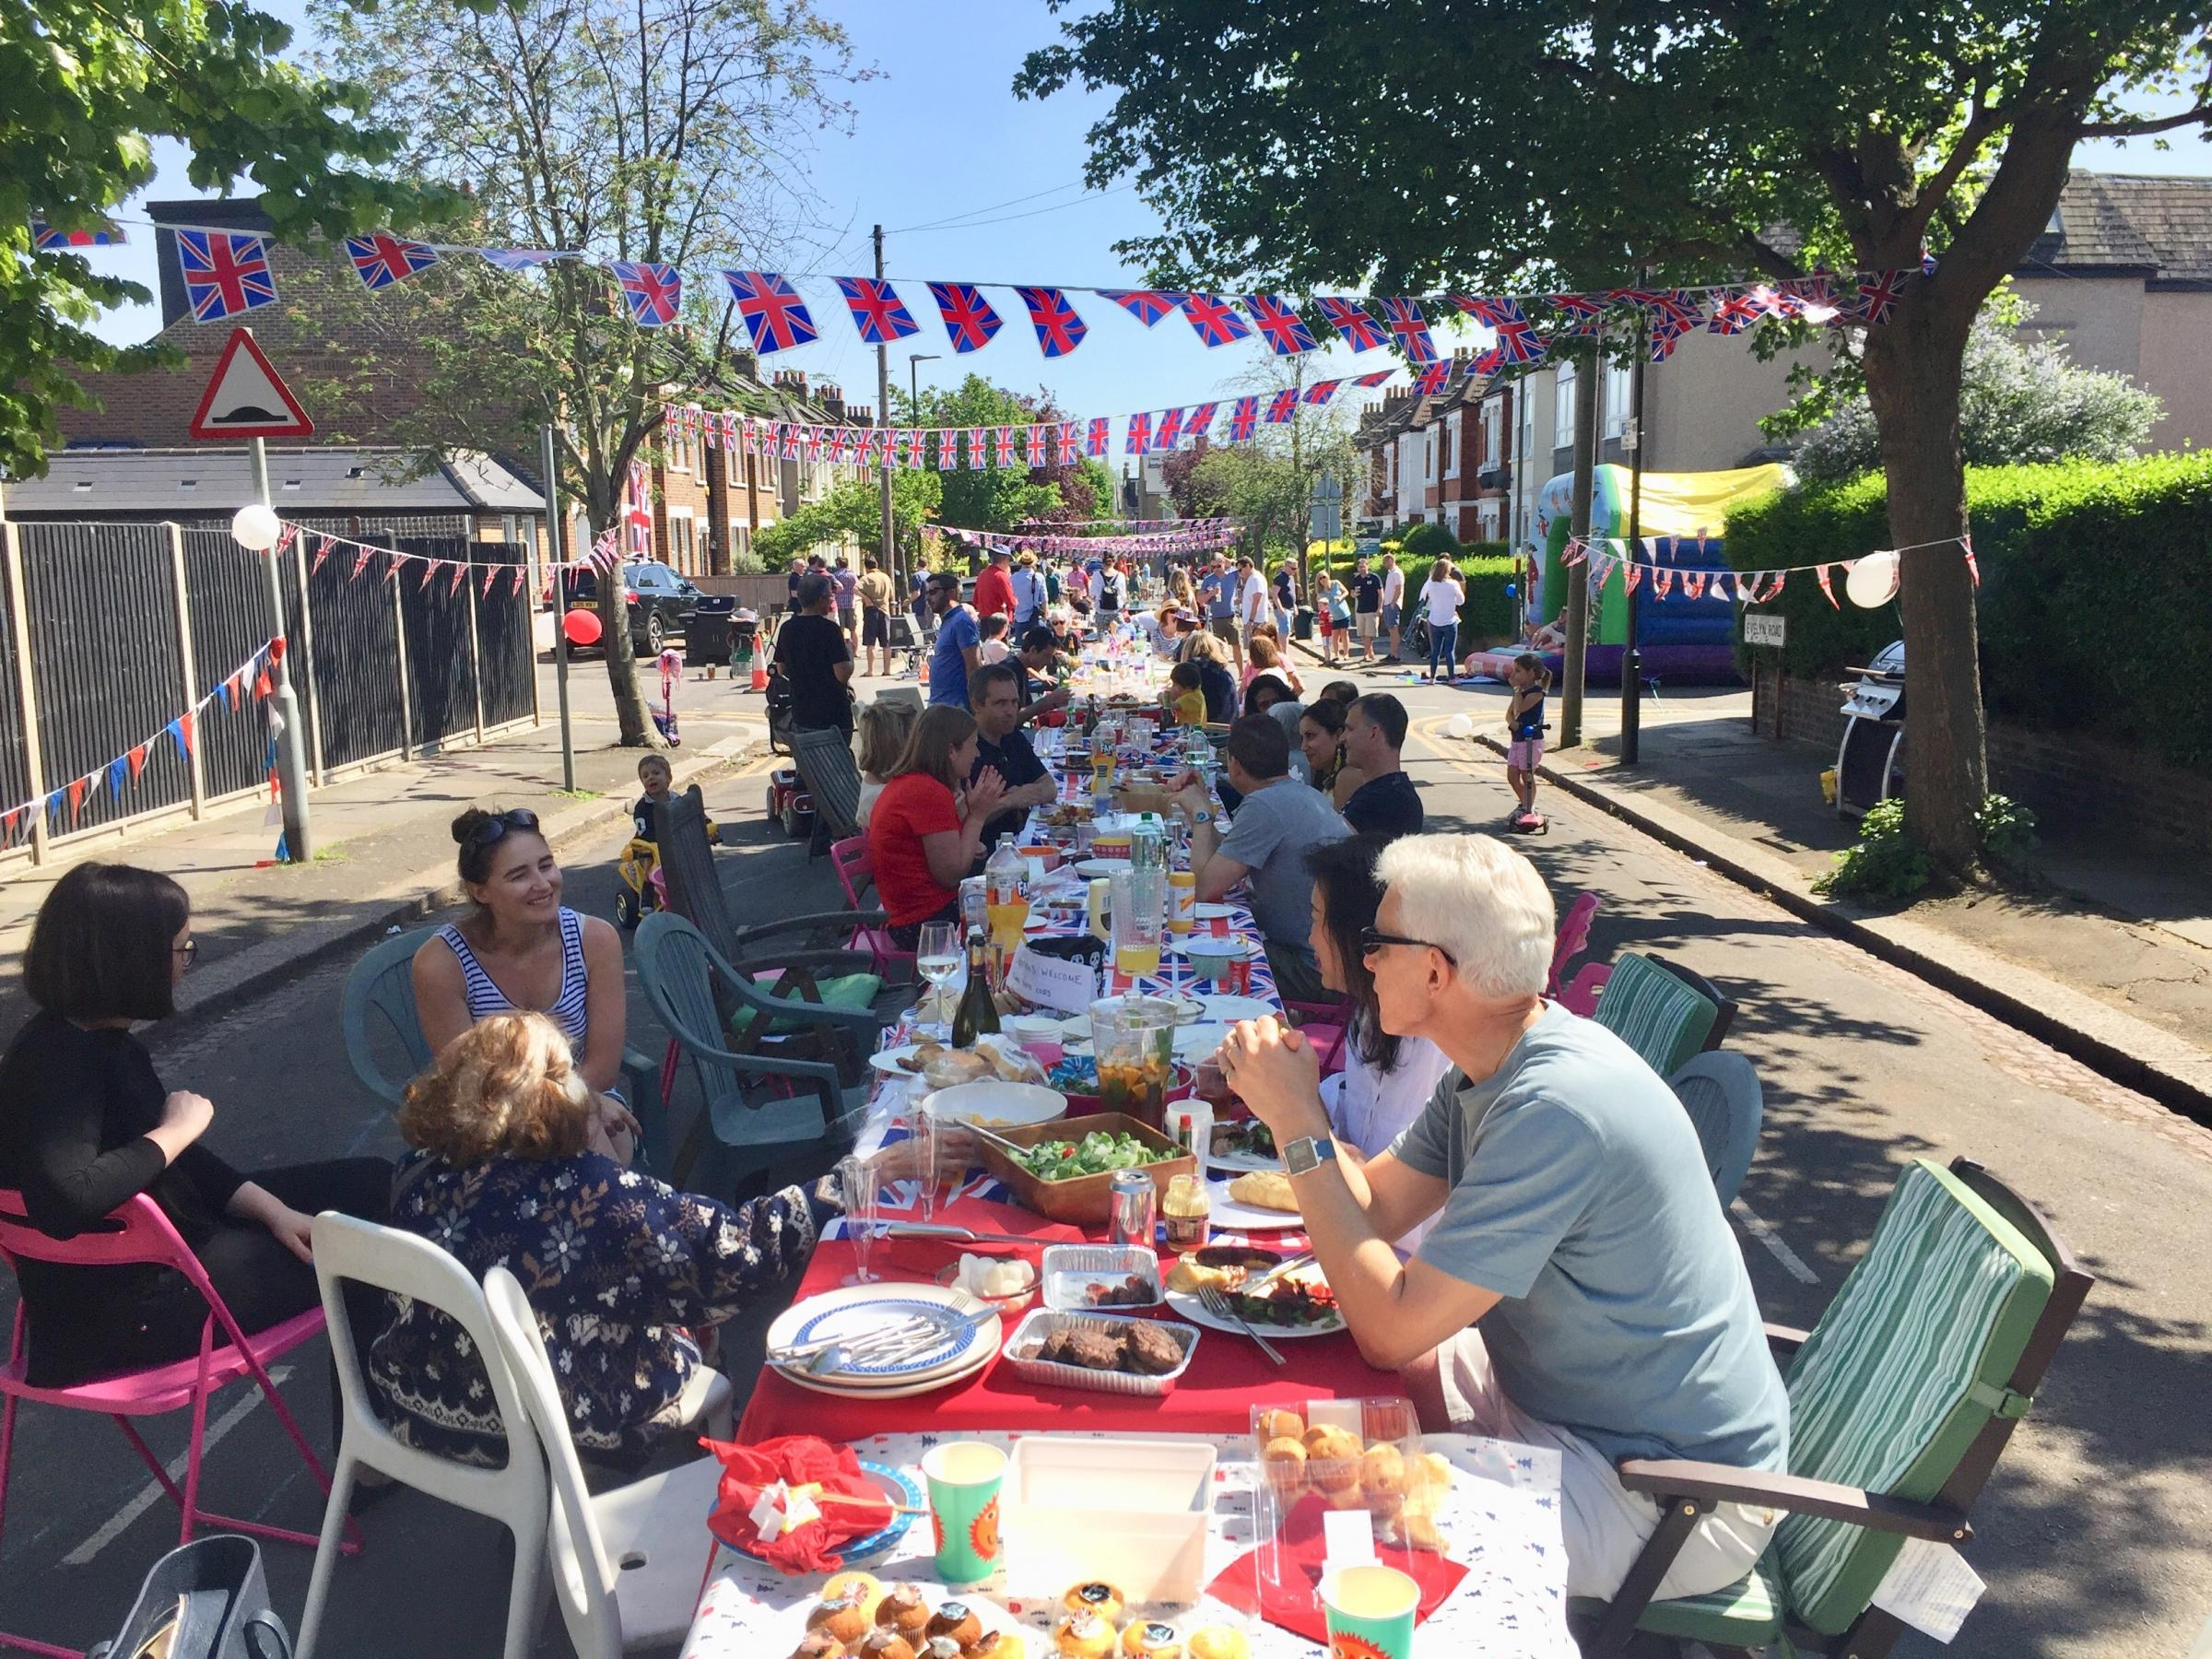 Royal Wedding Street Party in Evelyn Road